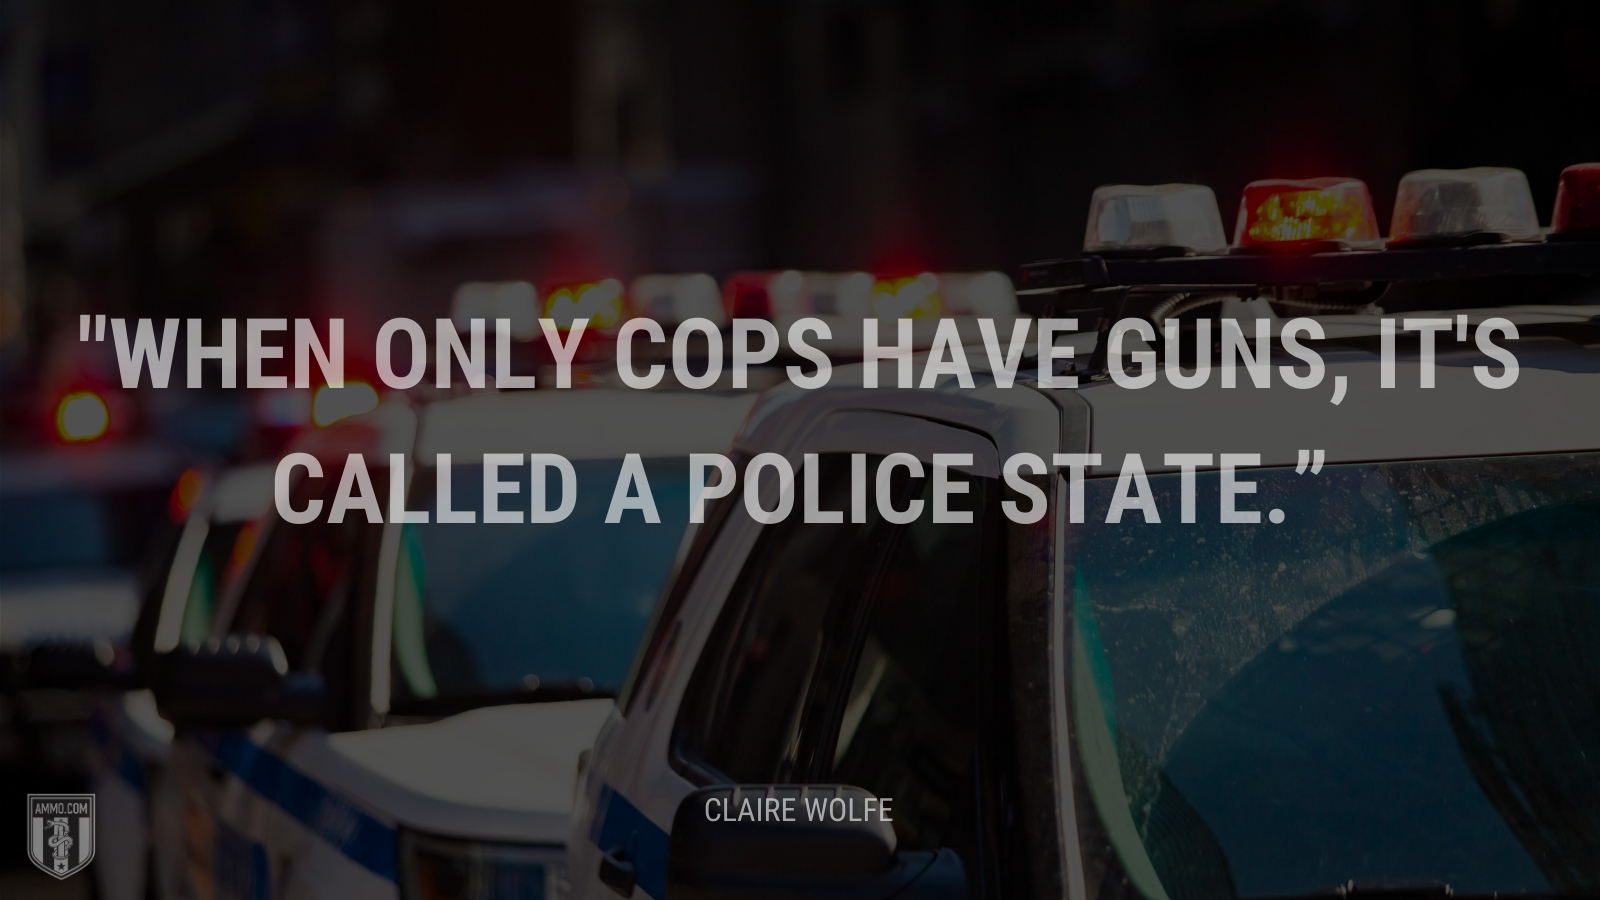 """""""When only cops have guns, it's called a police state."""" - Claire Wolfe"""